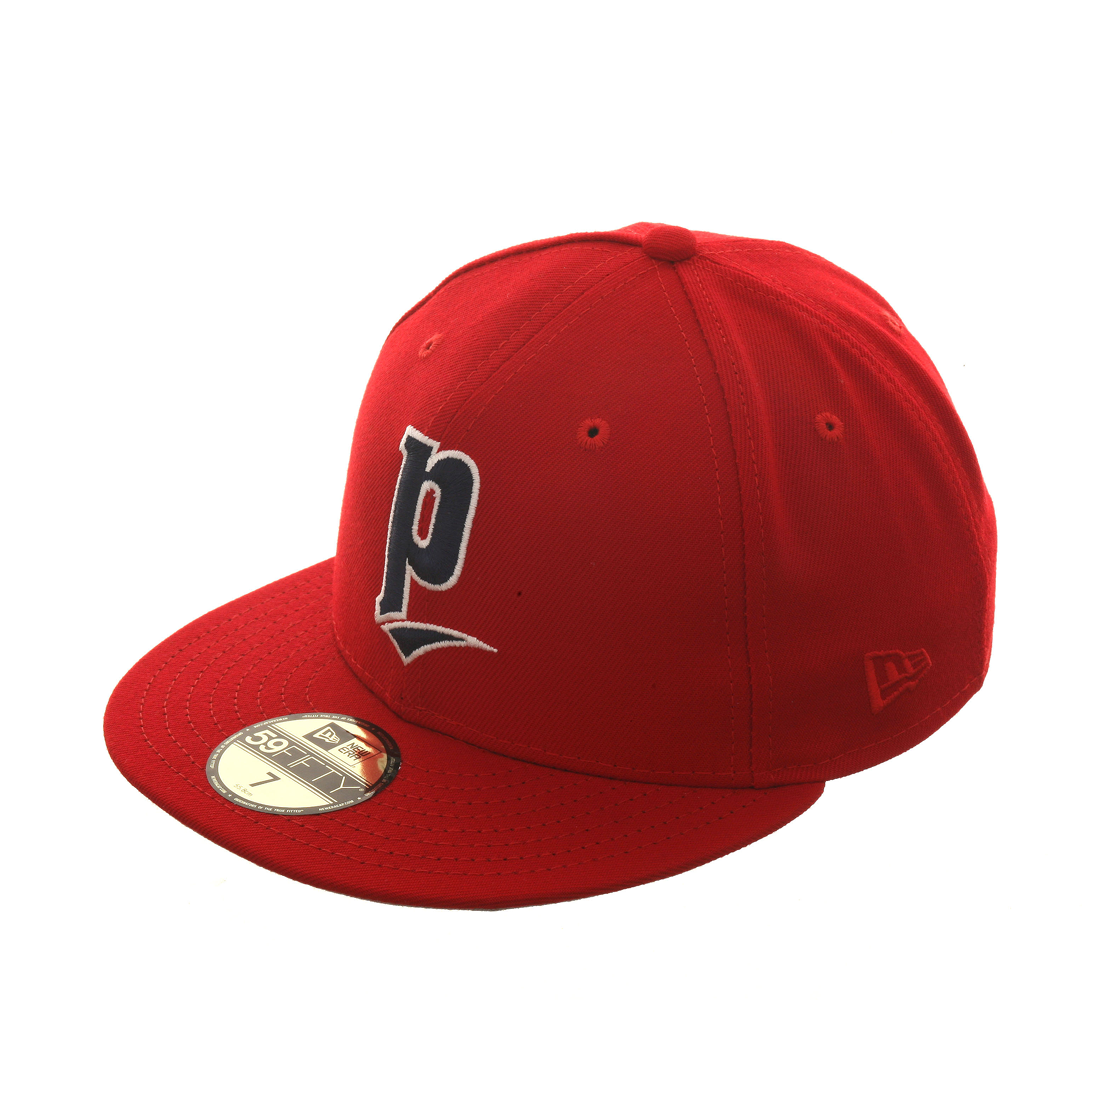 Exclusive New Era 59Fifty 1991 Portland Beavers Hat - Red, Navy, White